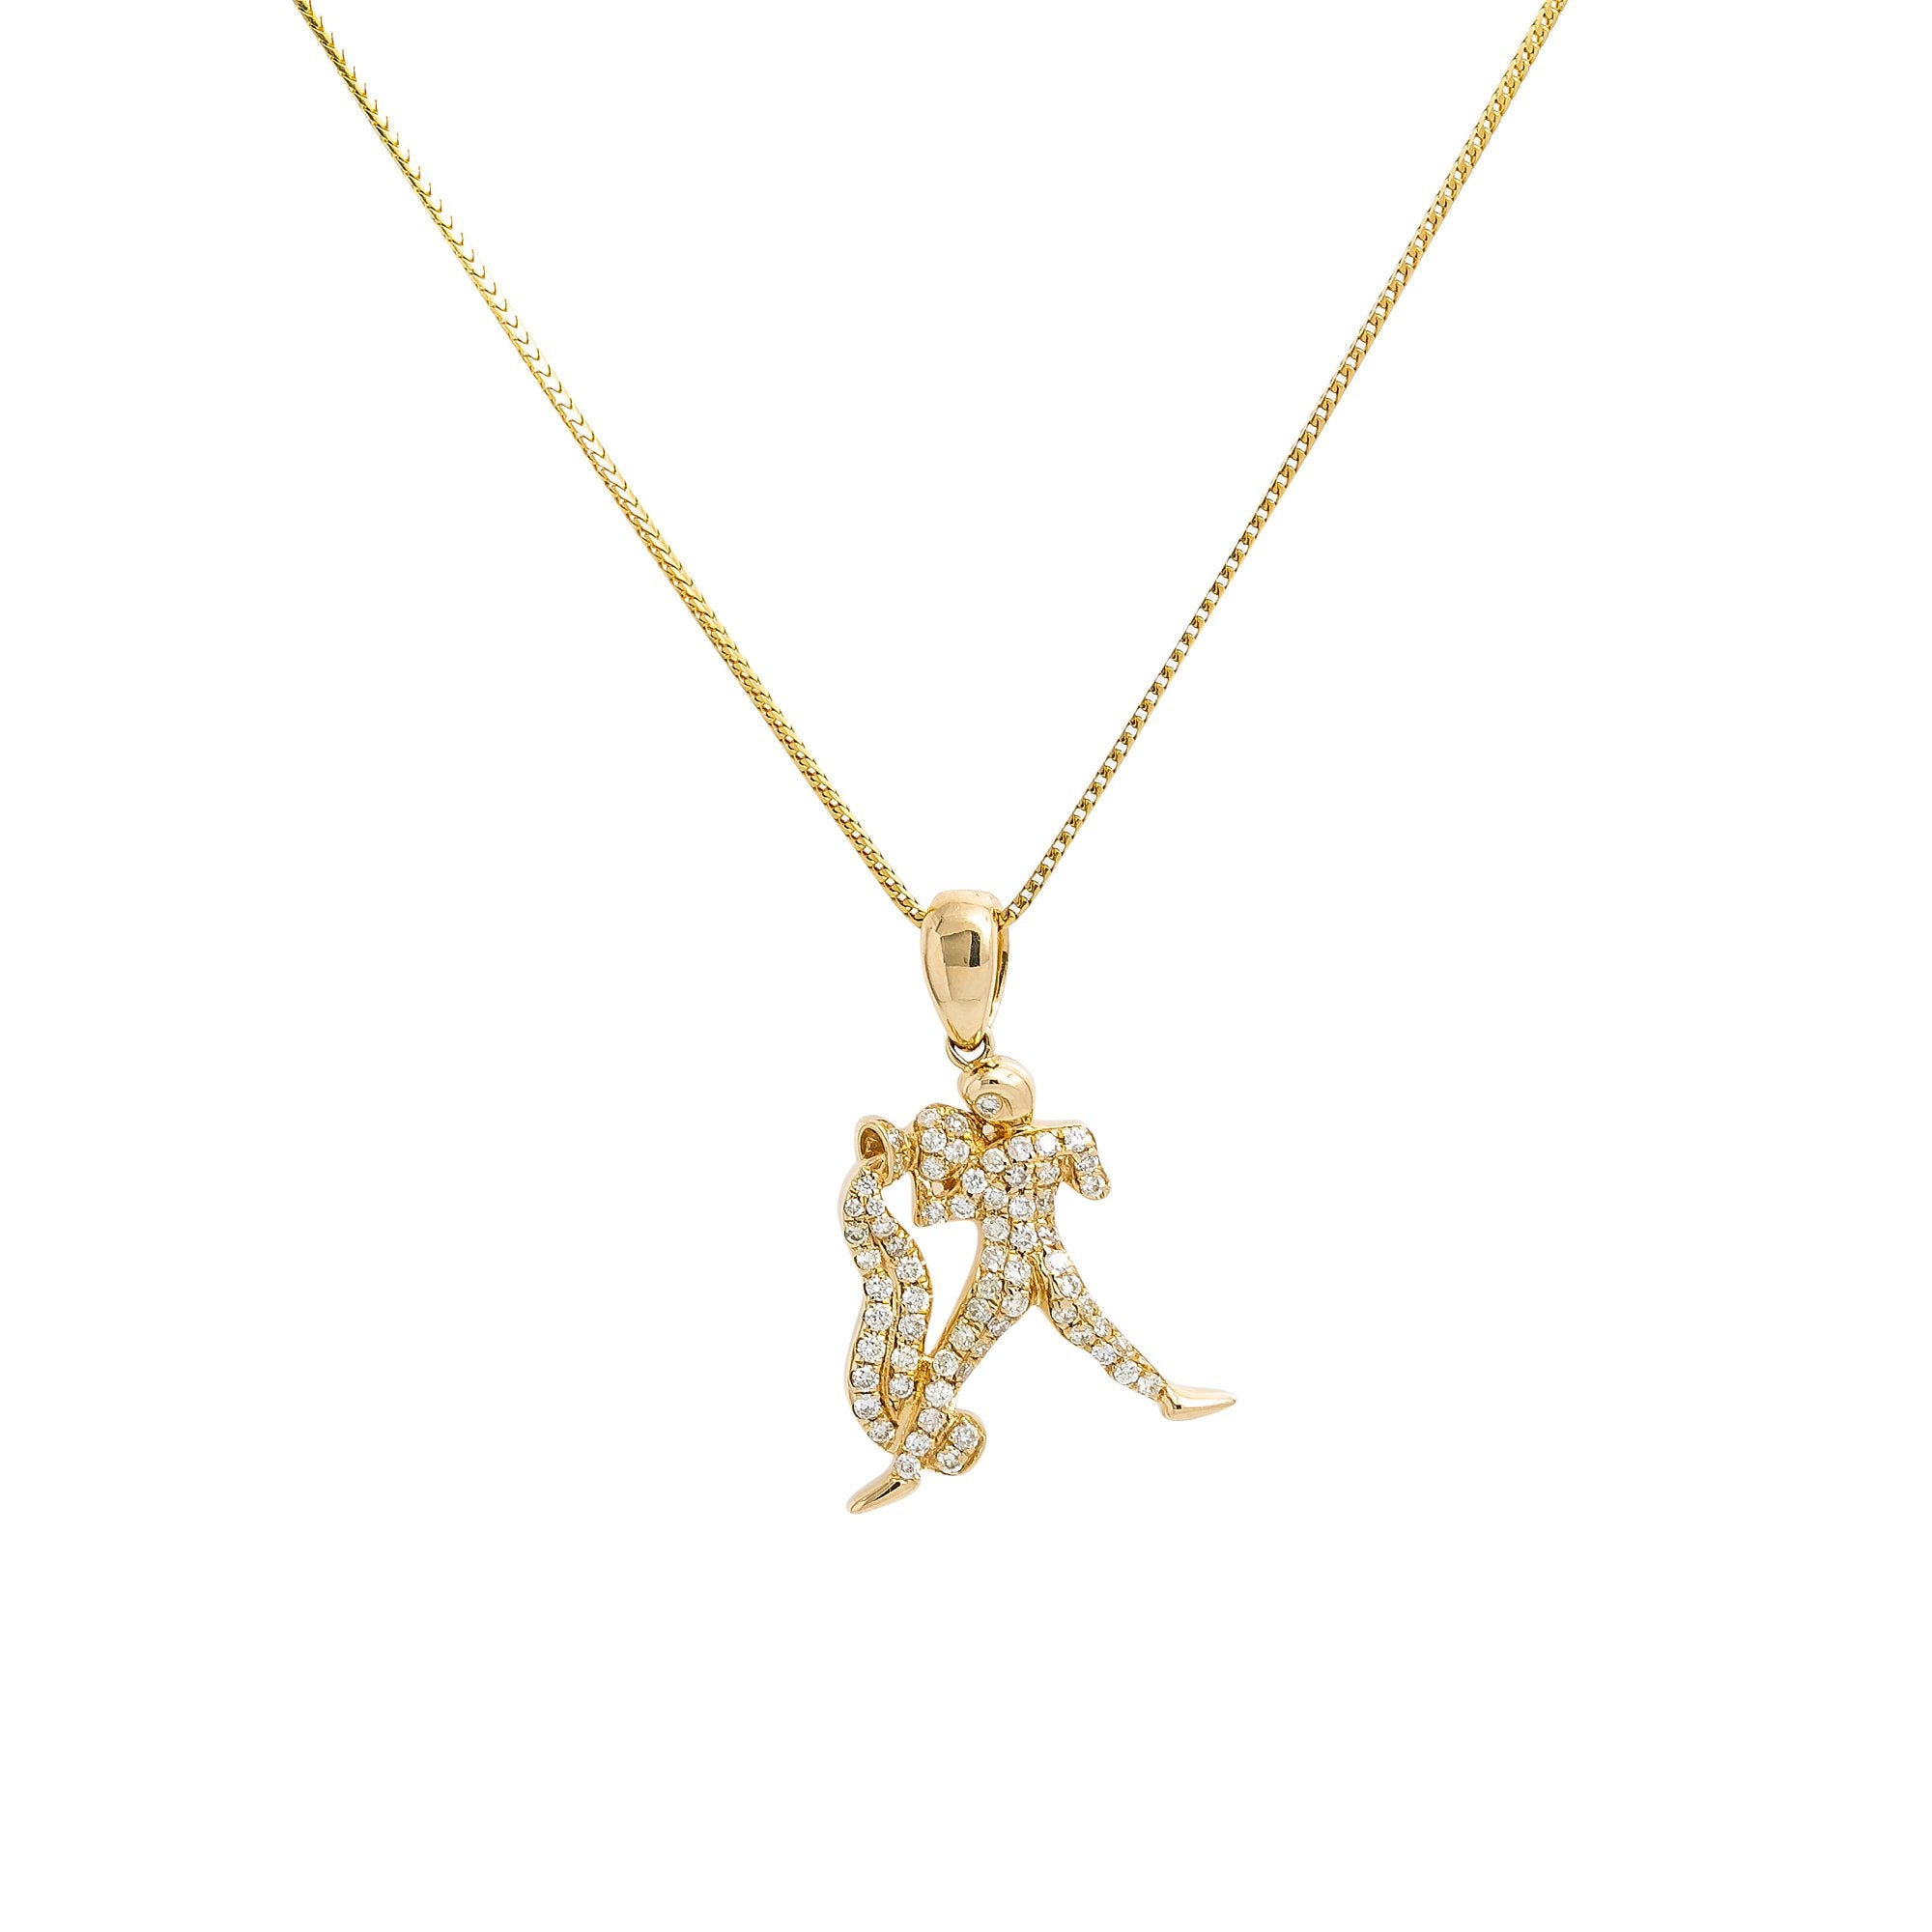 Unisex 14K Yellow Gold  Pendant with 0.48 CT Diamonds